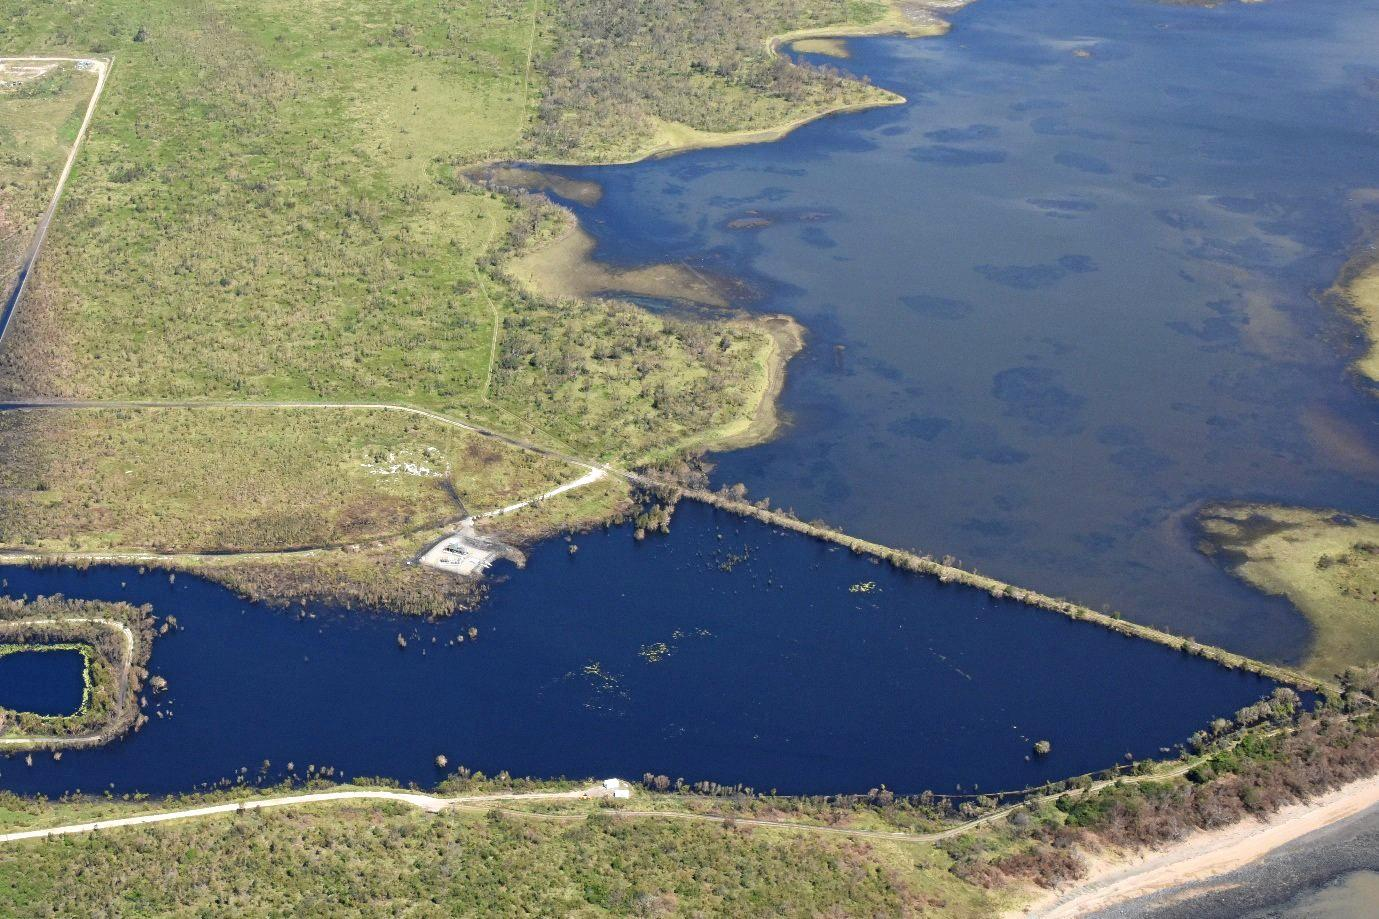 Adani says dams prevented coal from the Abbot Point coal terminal washing into the the Caley Valley wetlands after Cyclone Debbie.